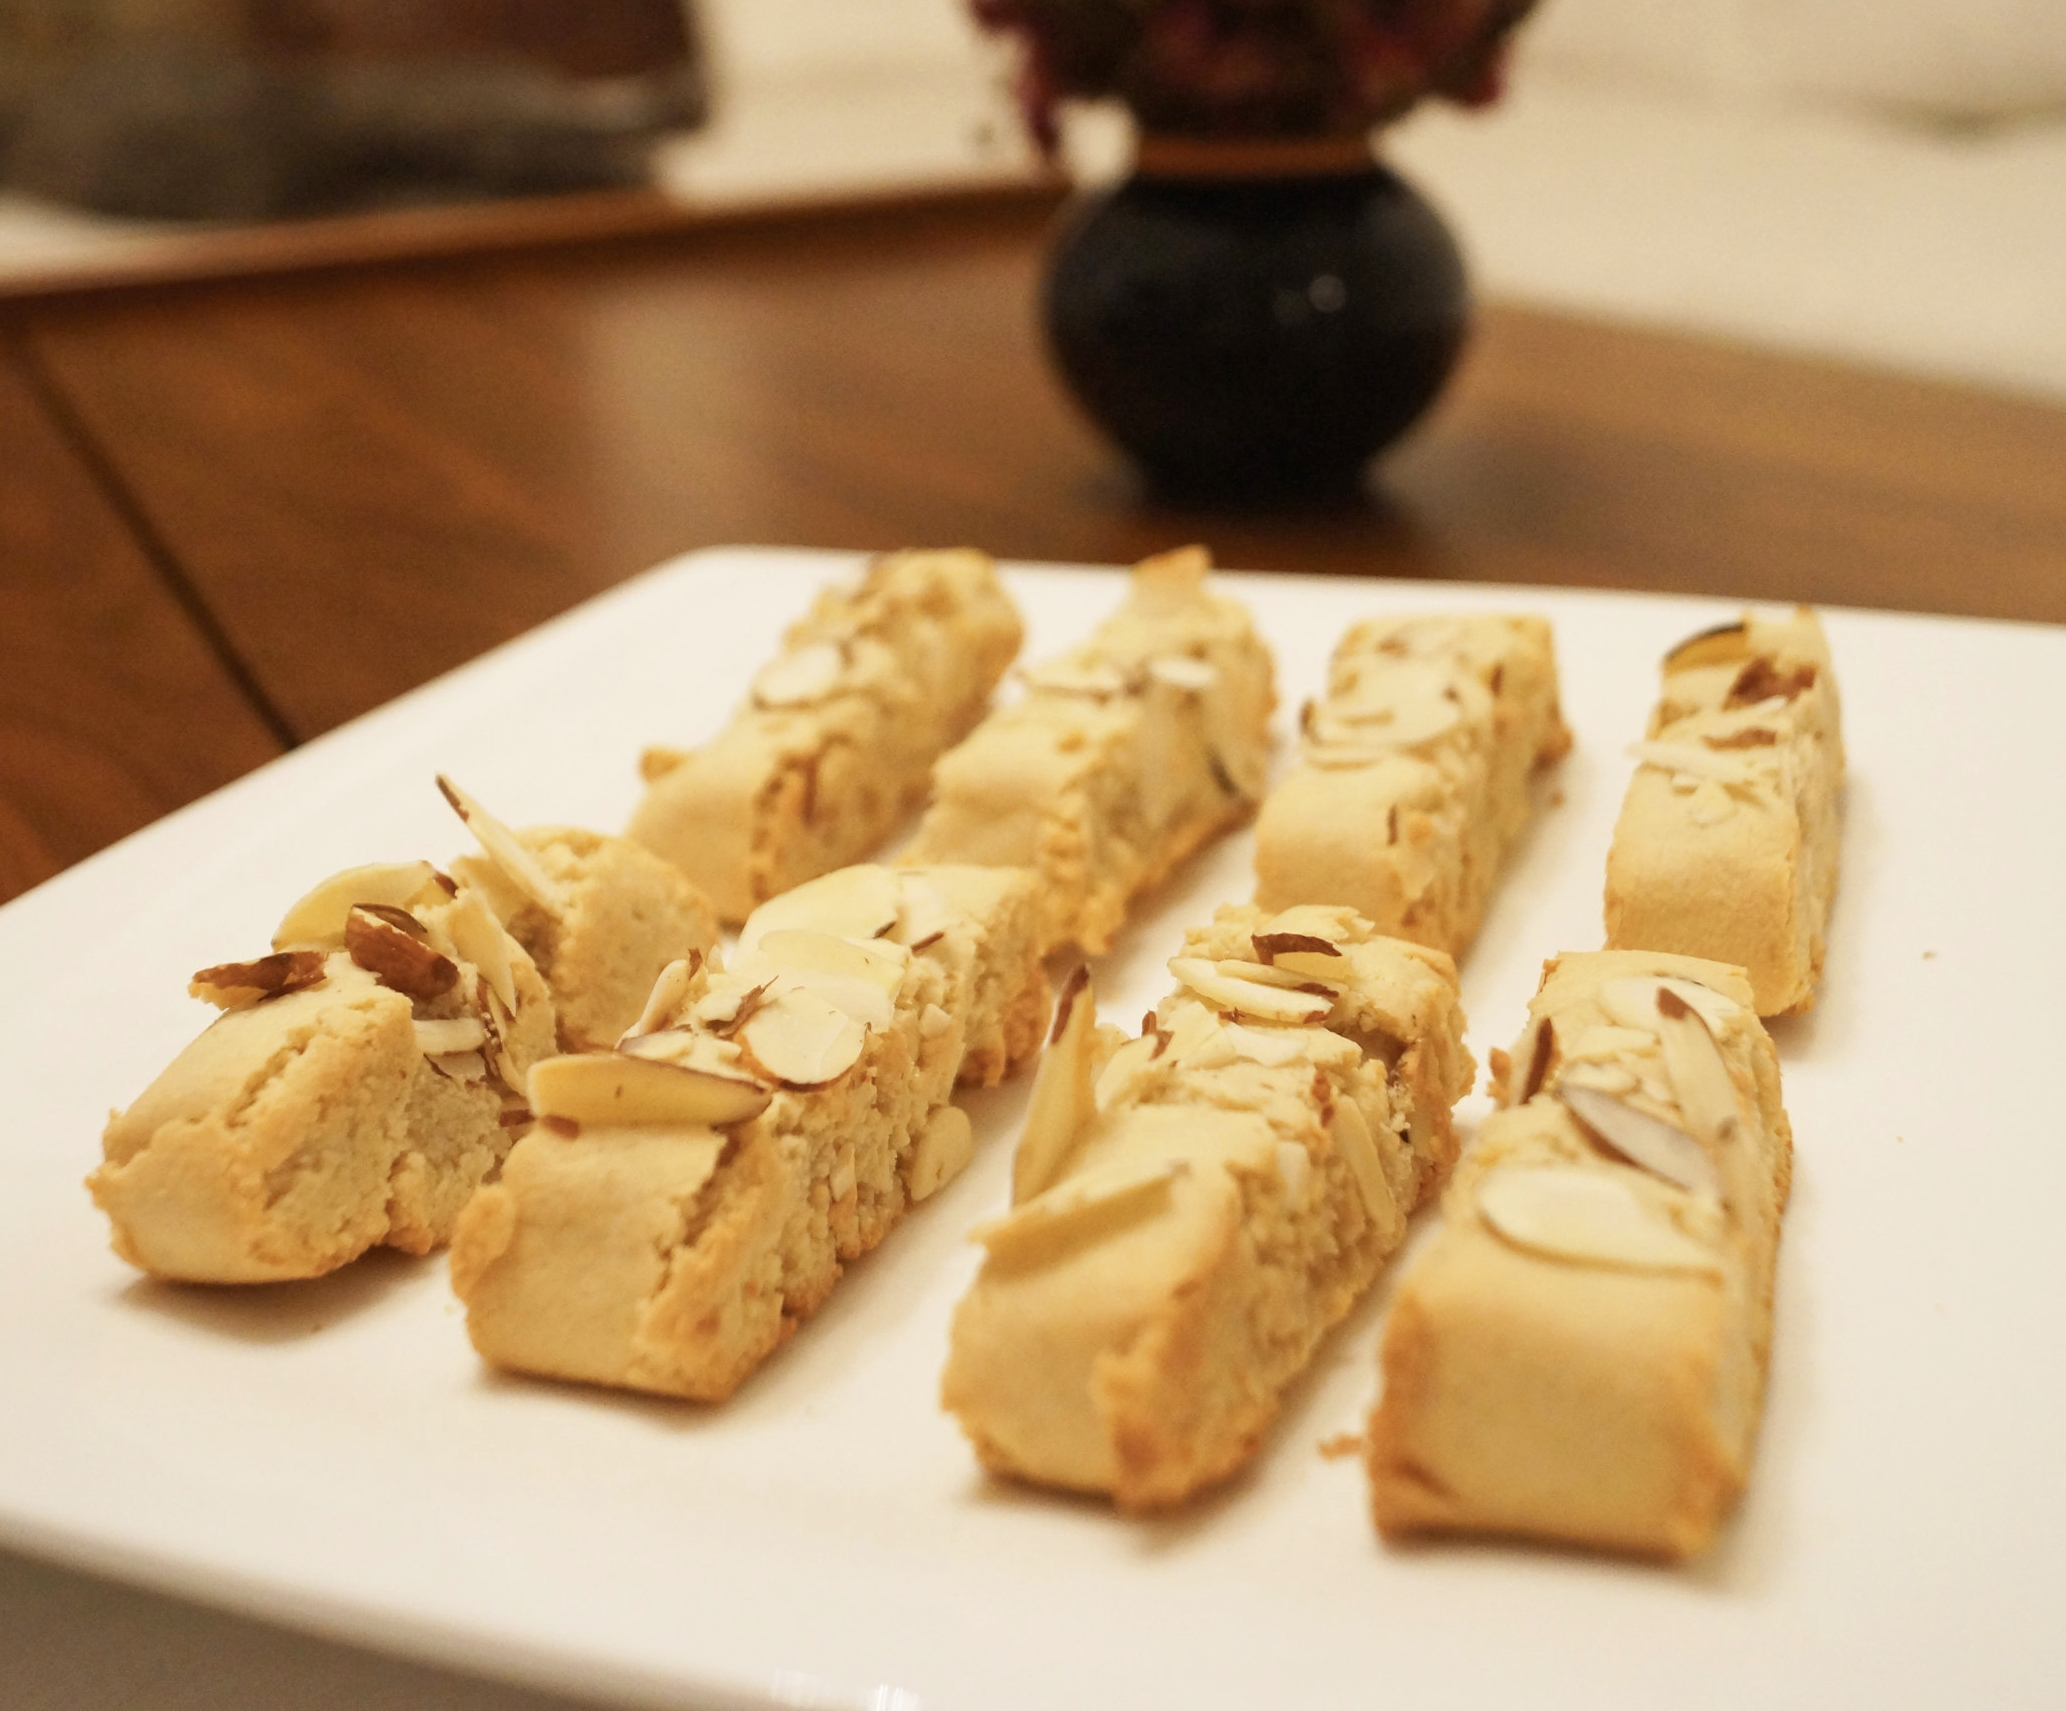 These Vegan almond biscotti are made with almond flour and maple syrup.